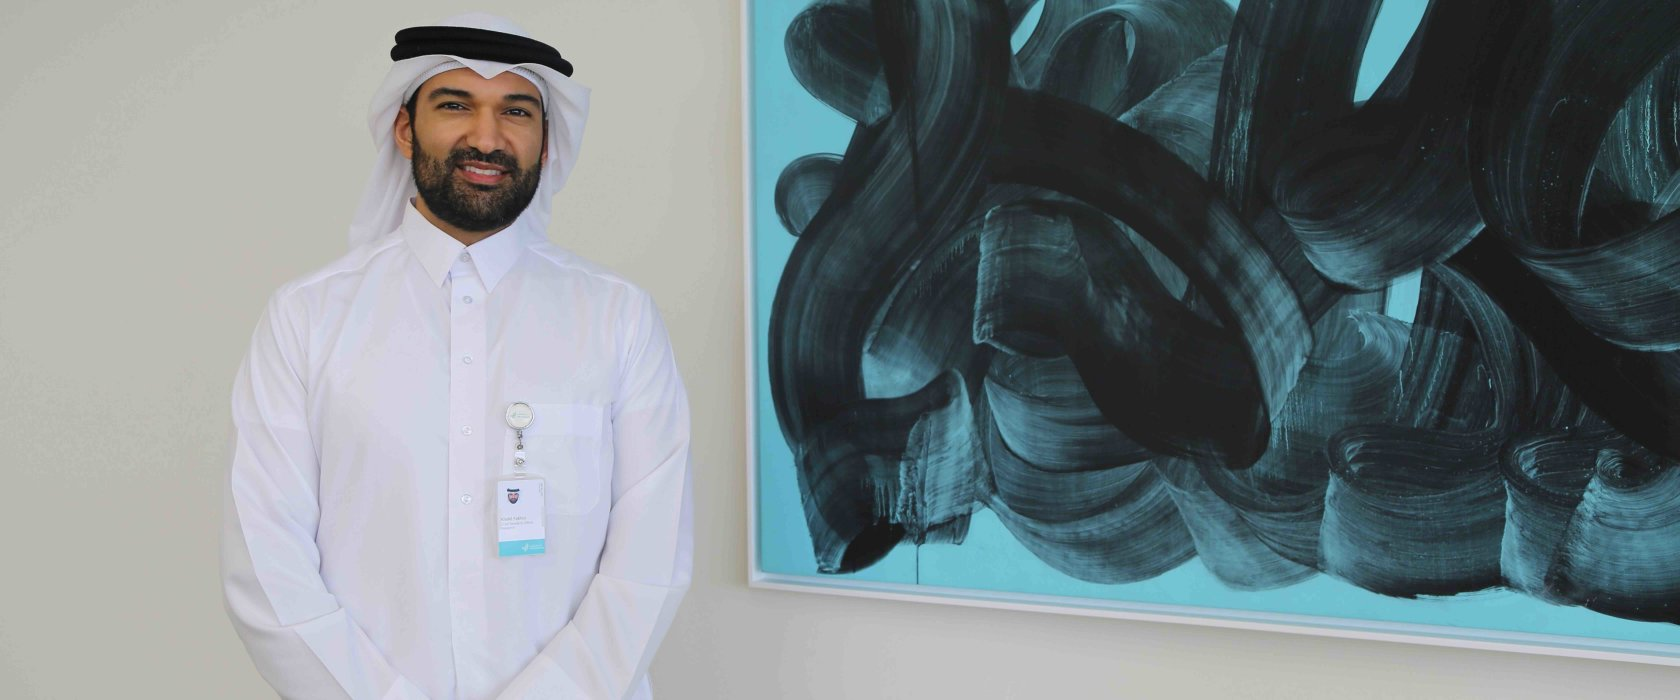 COVID-19 is opening people's eyes to science and research: QF medical research expert